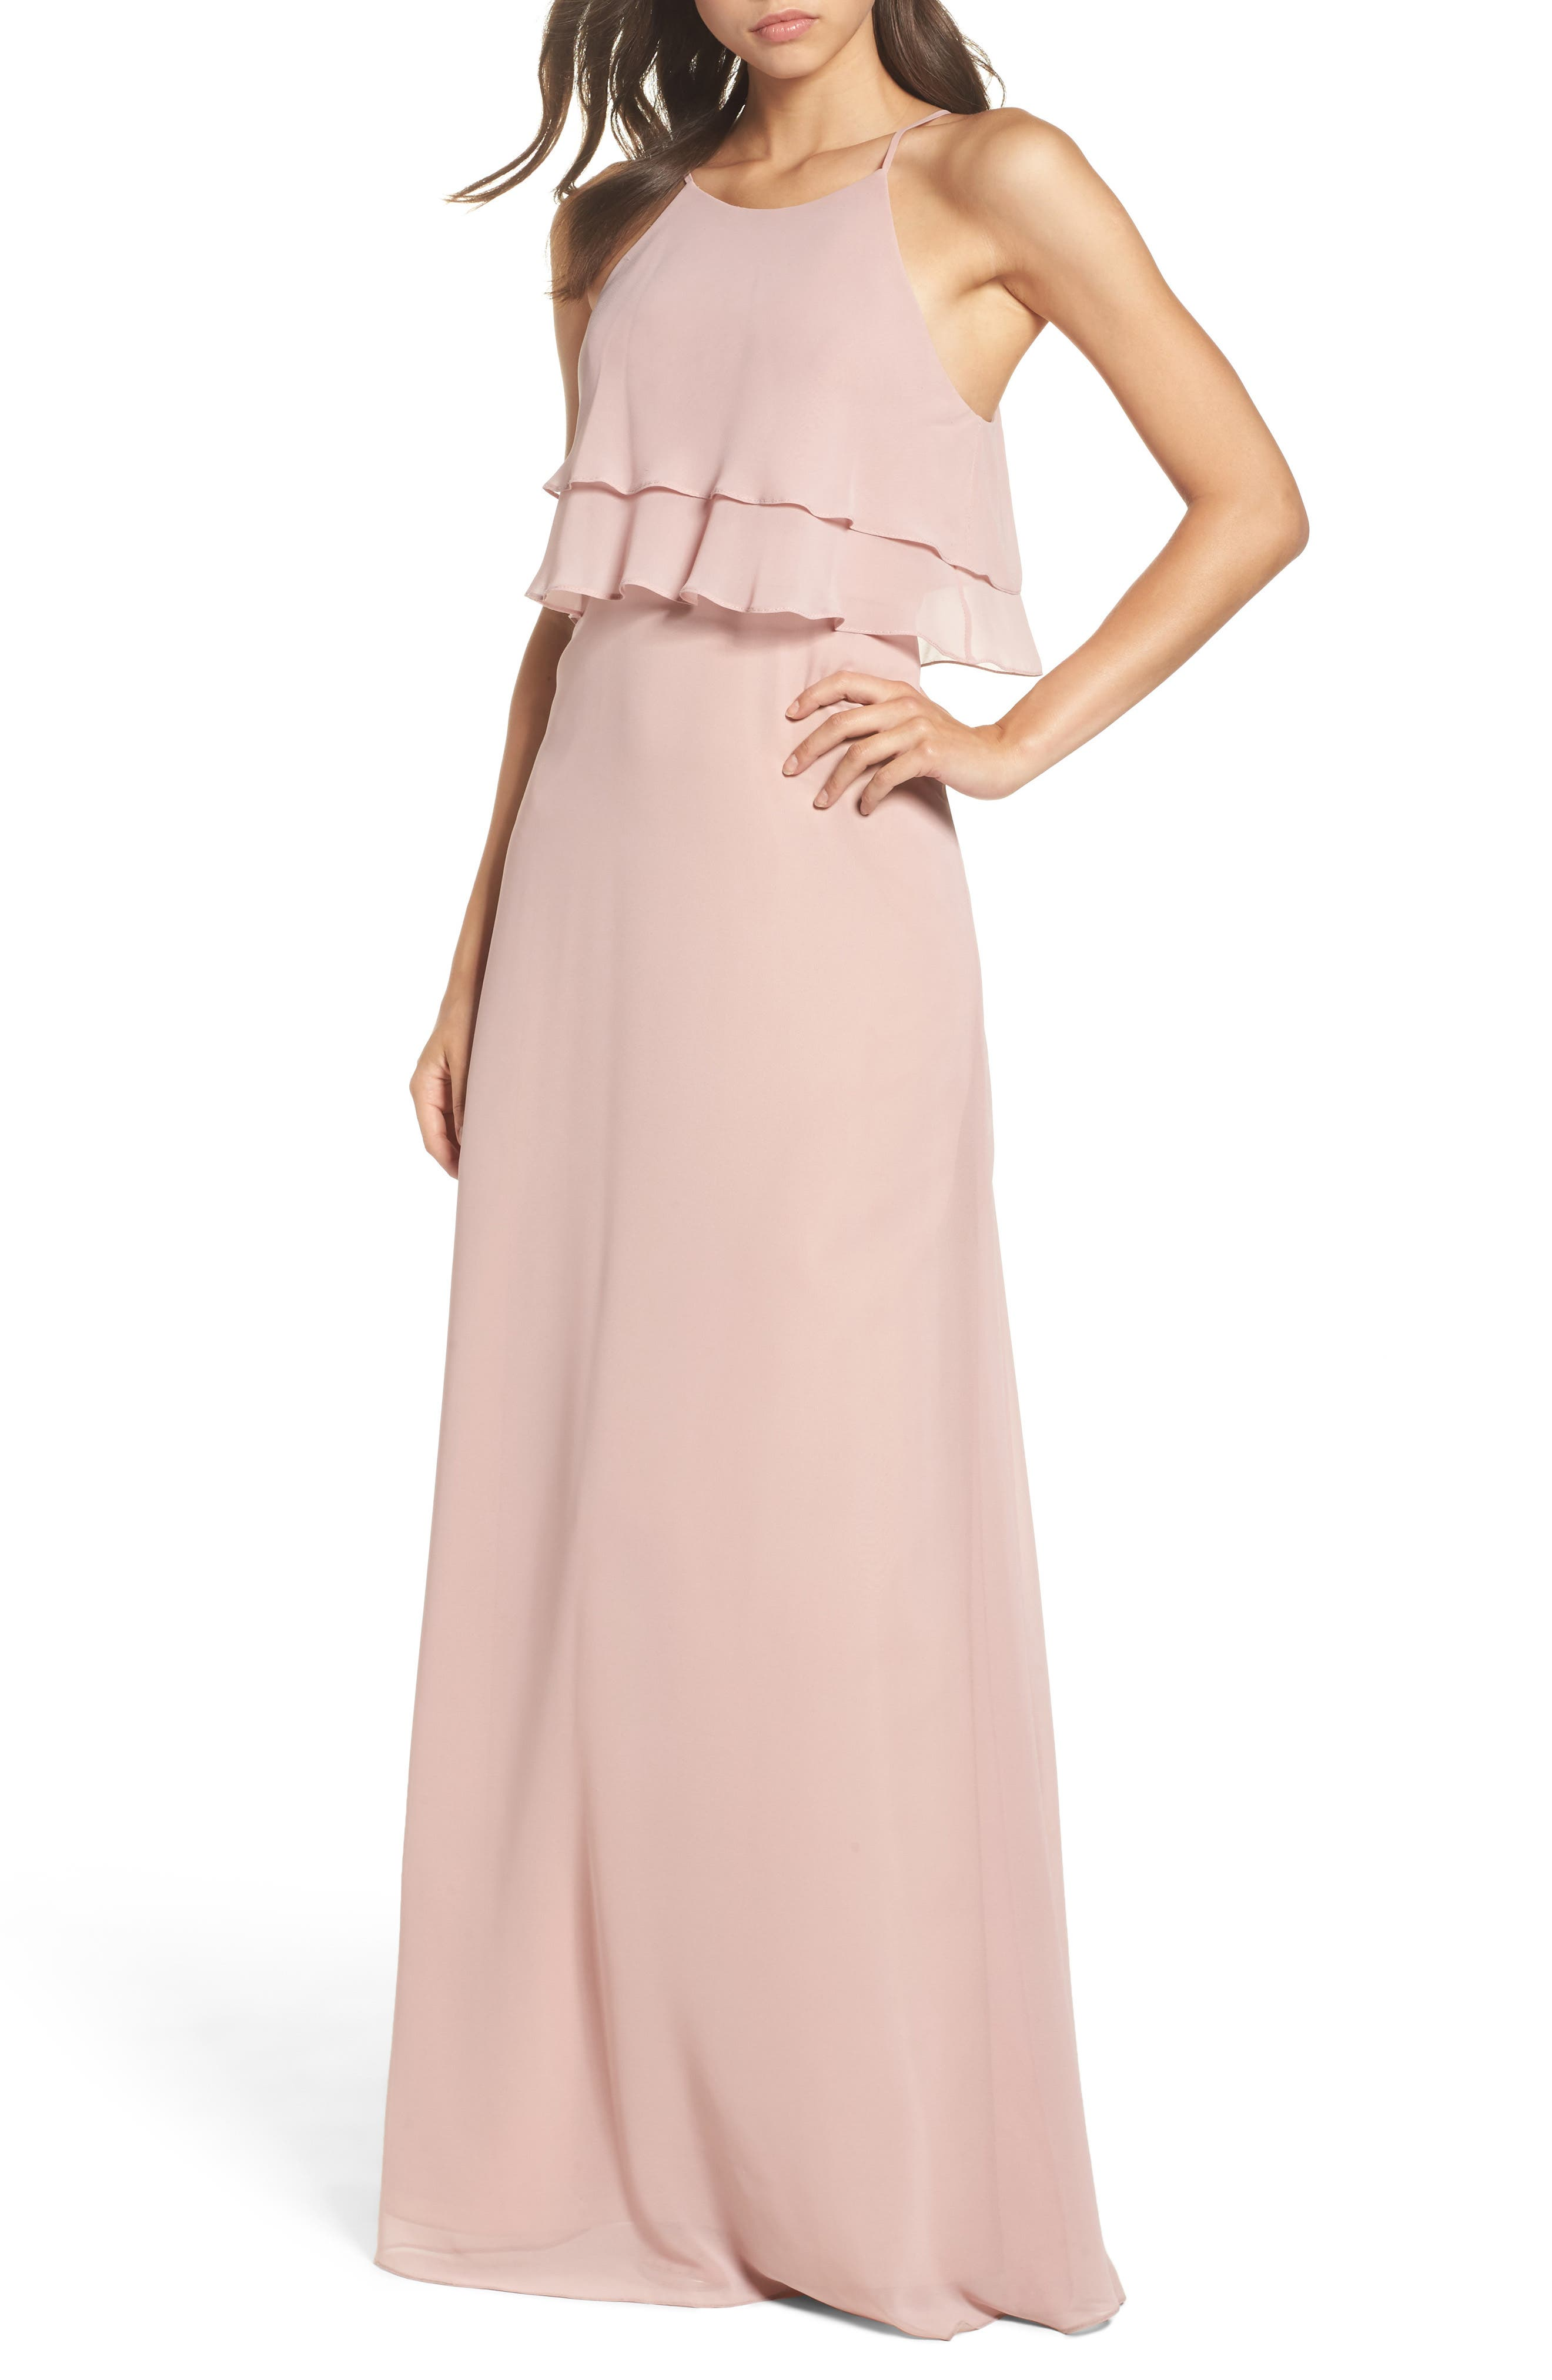 Charlie Ruffle Bodice Gown,                             Main thumbnail 4, color,